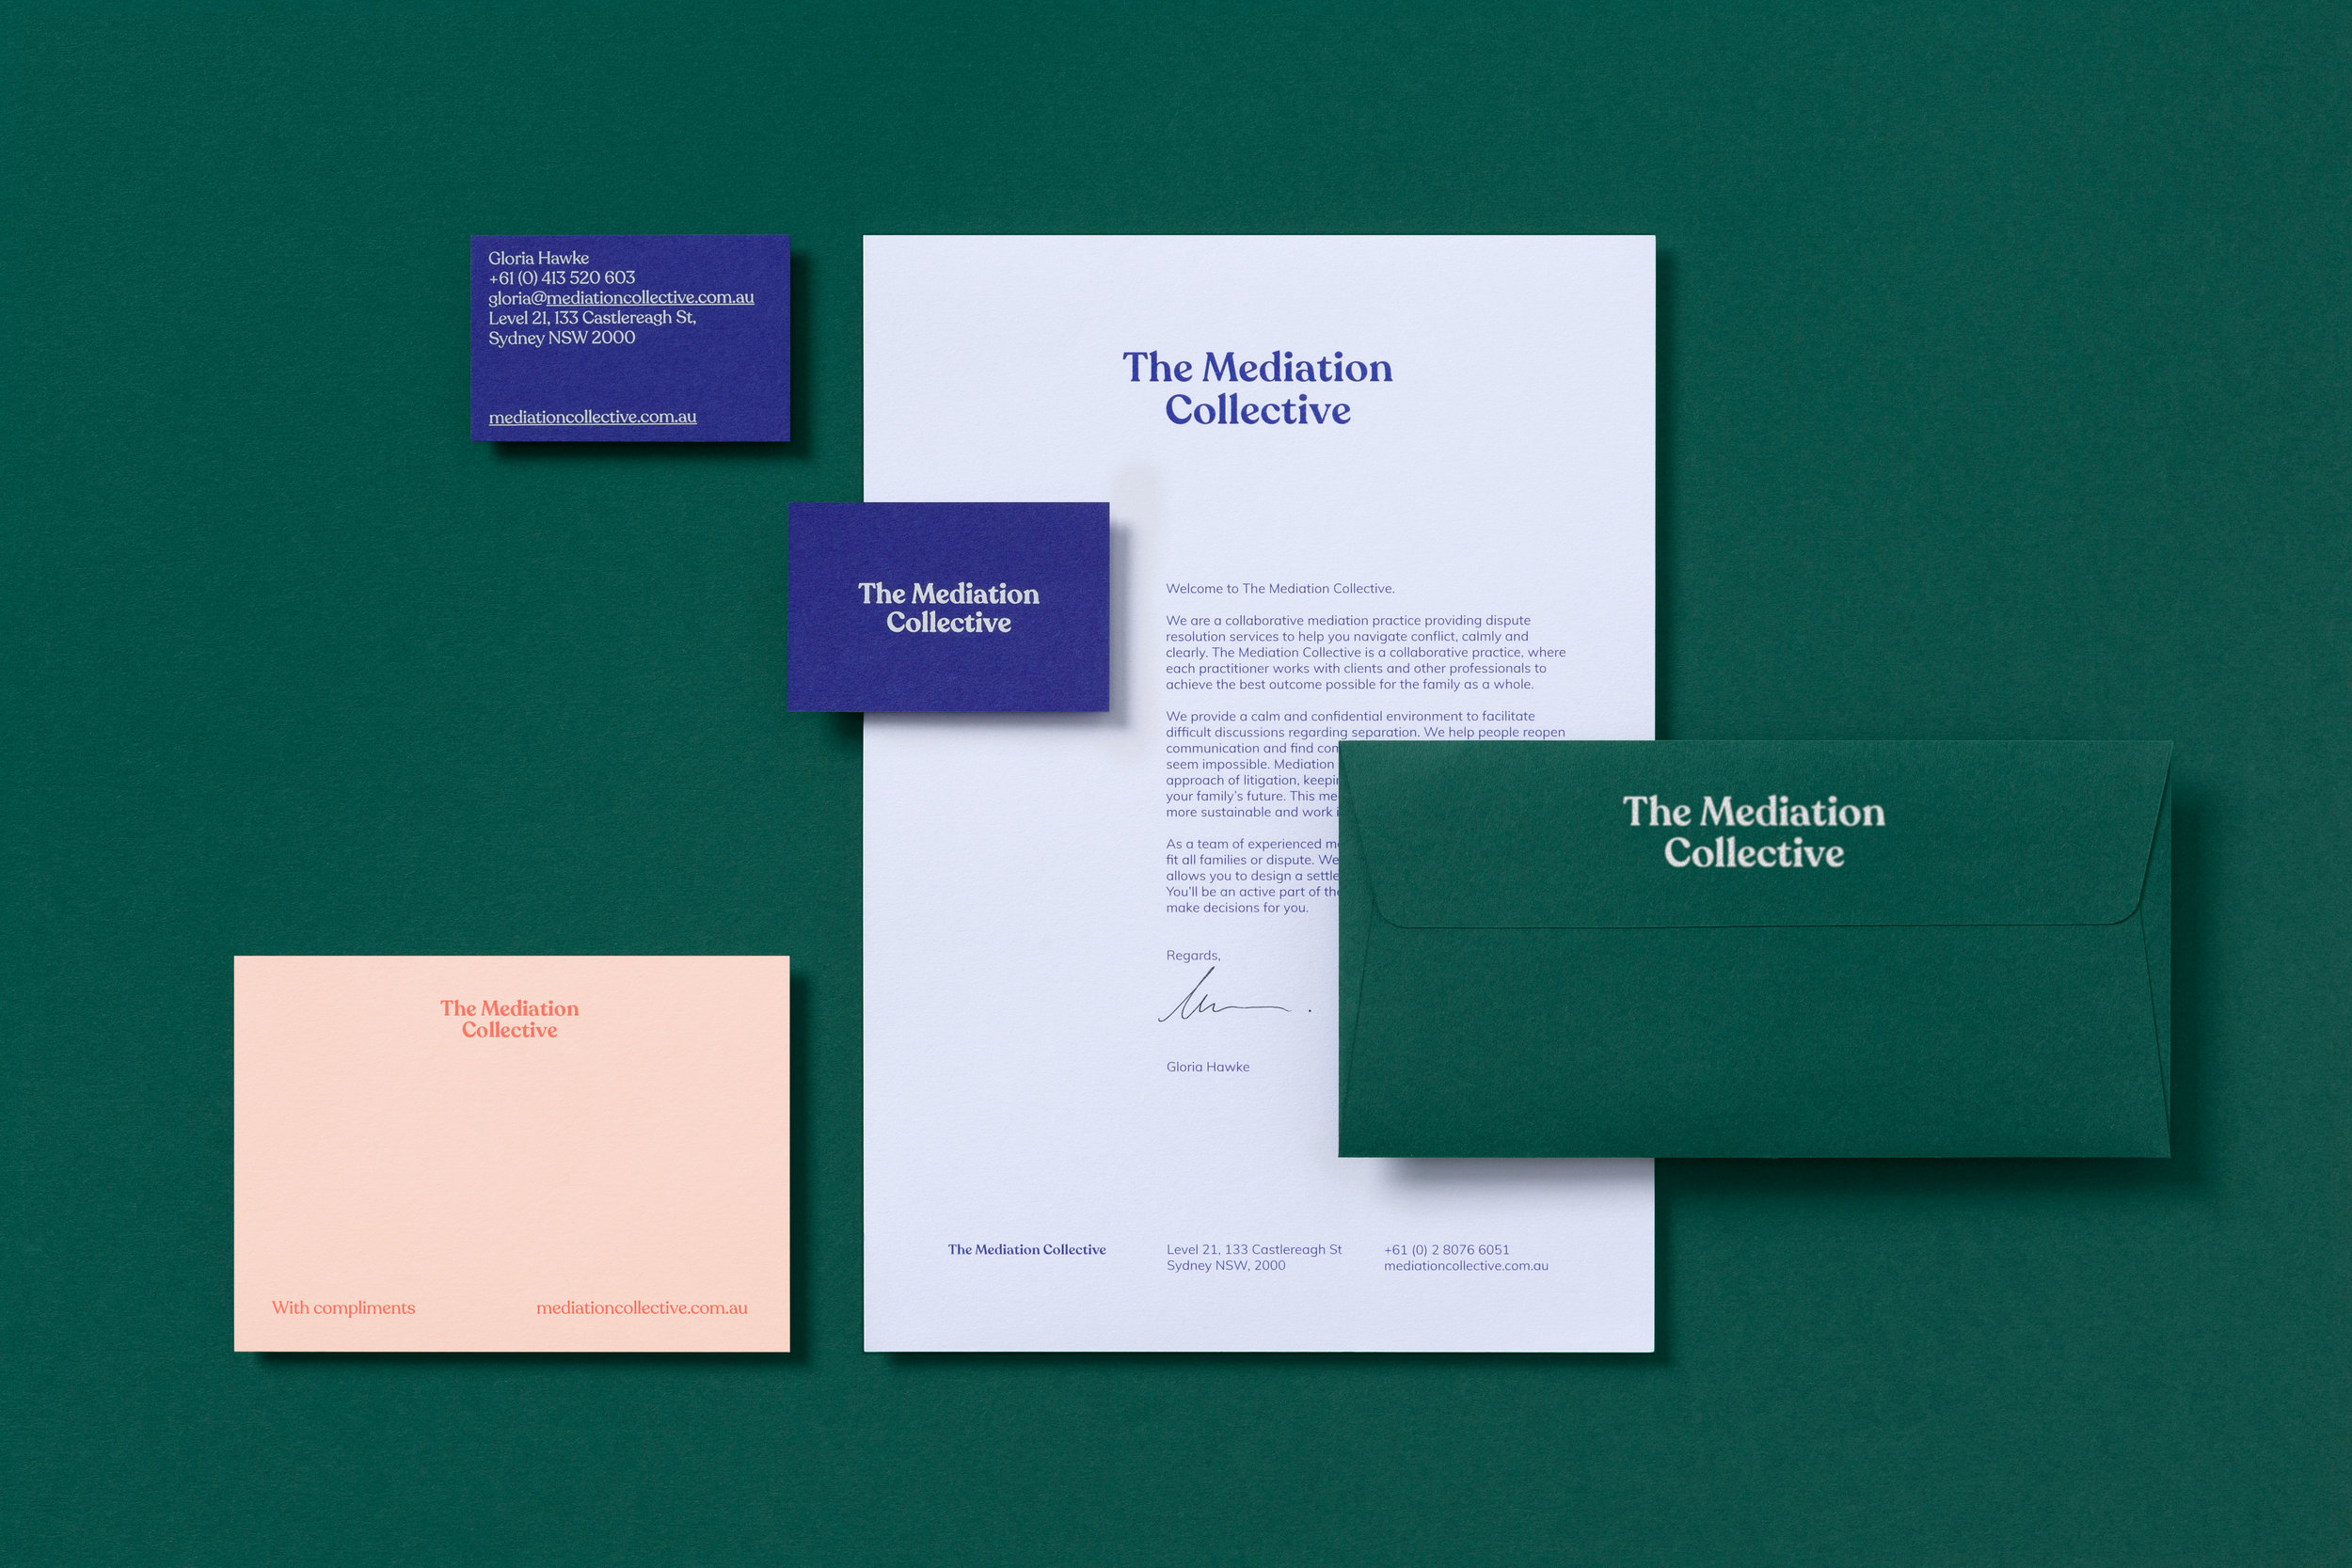 TheMediationCollective_DigiHi_Stationery_All.jpg